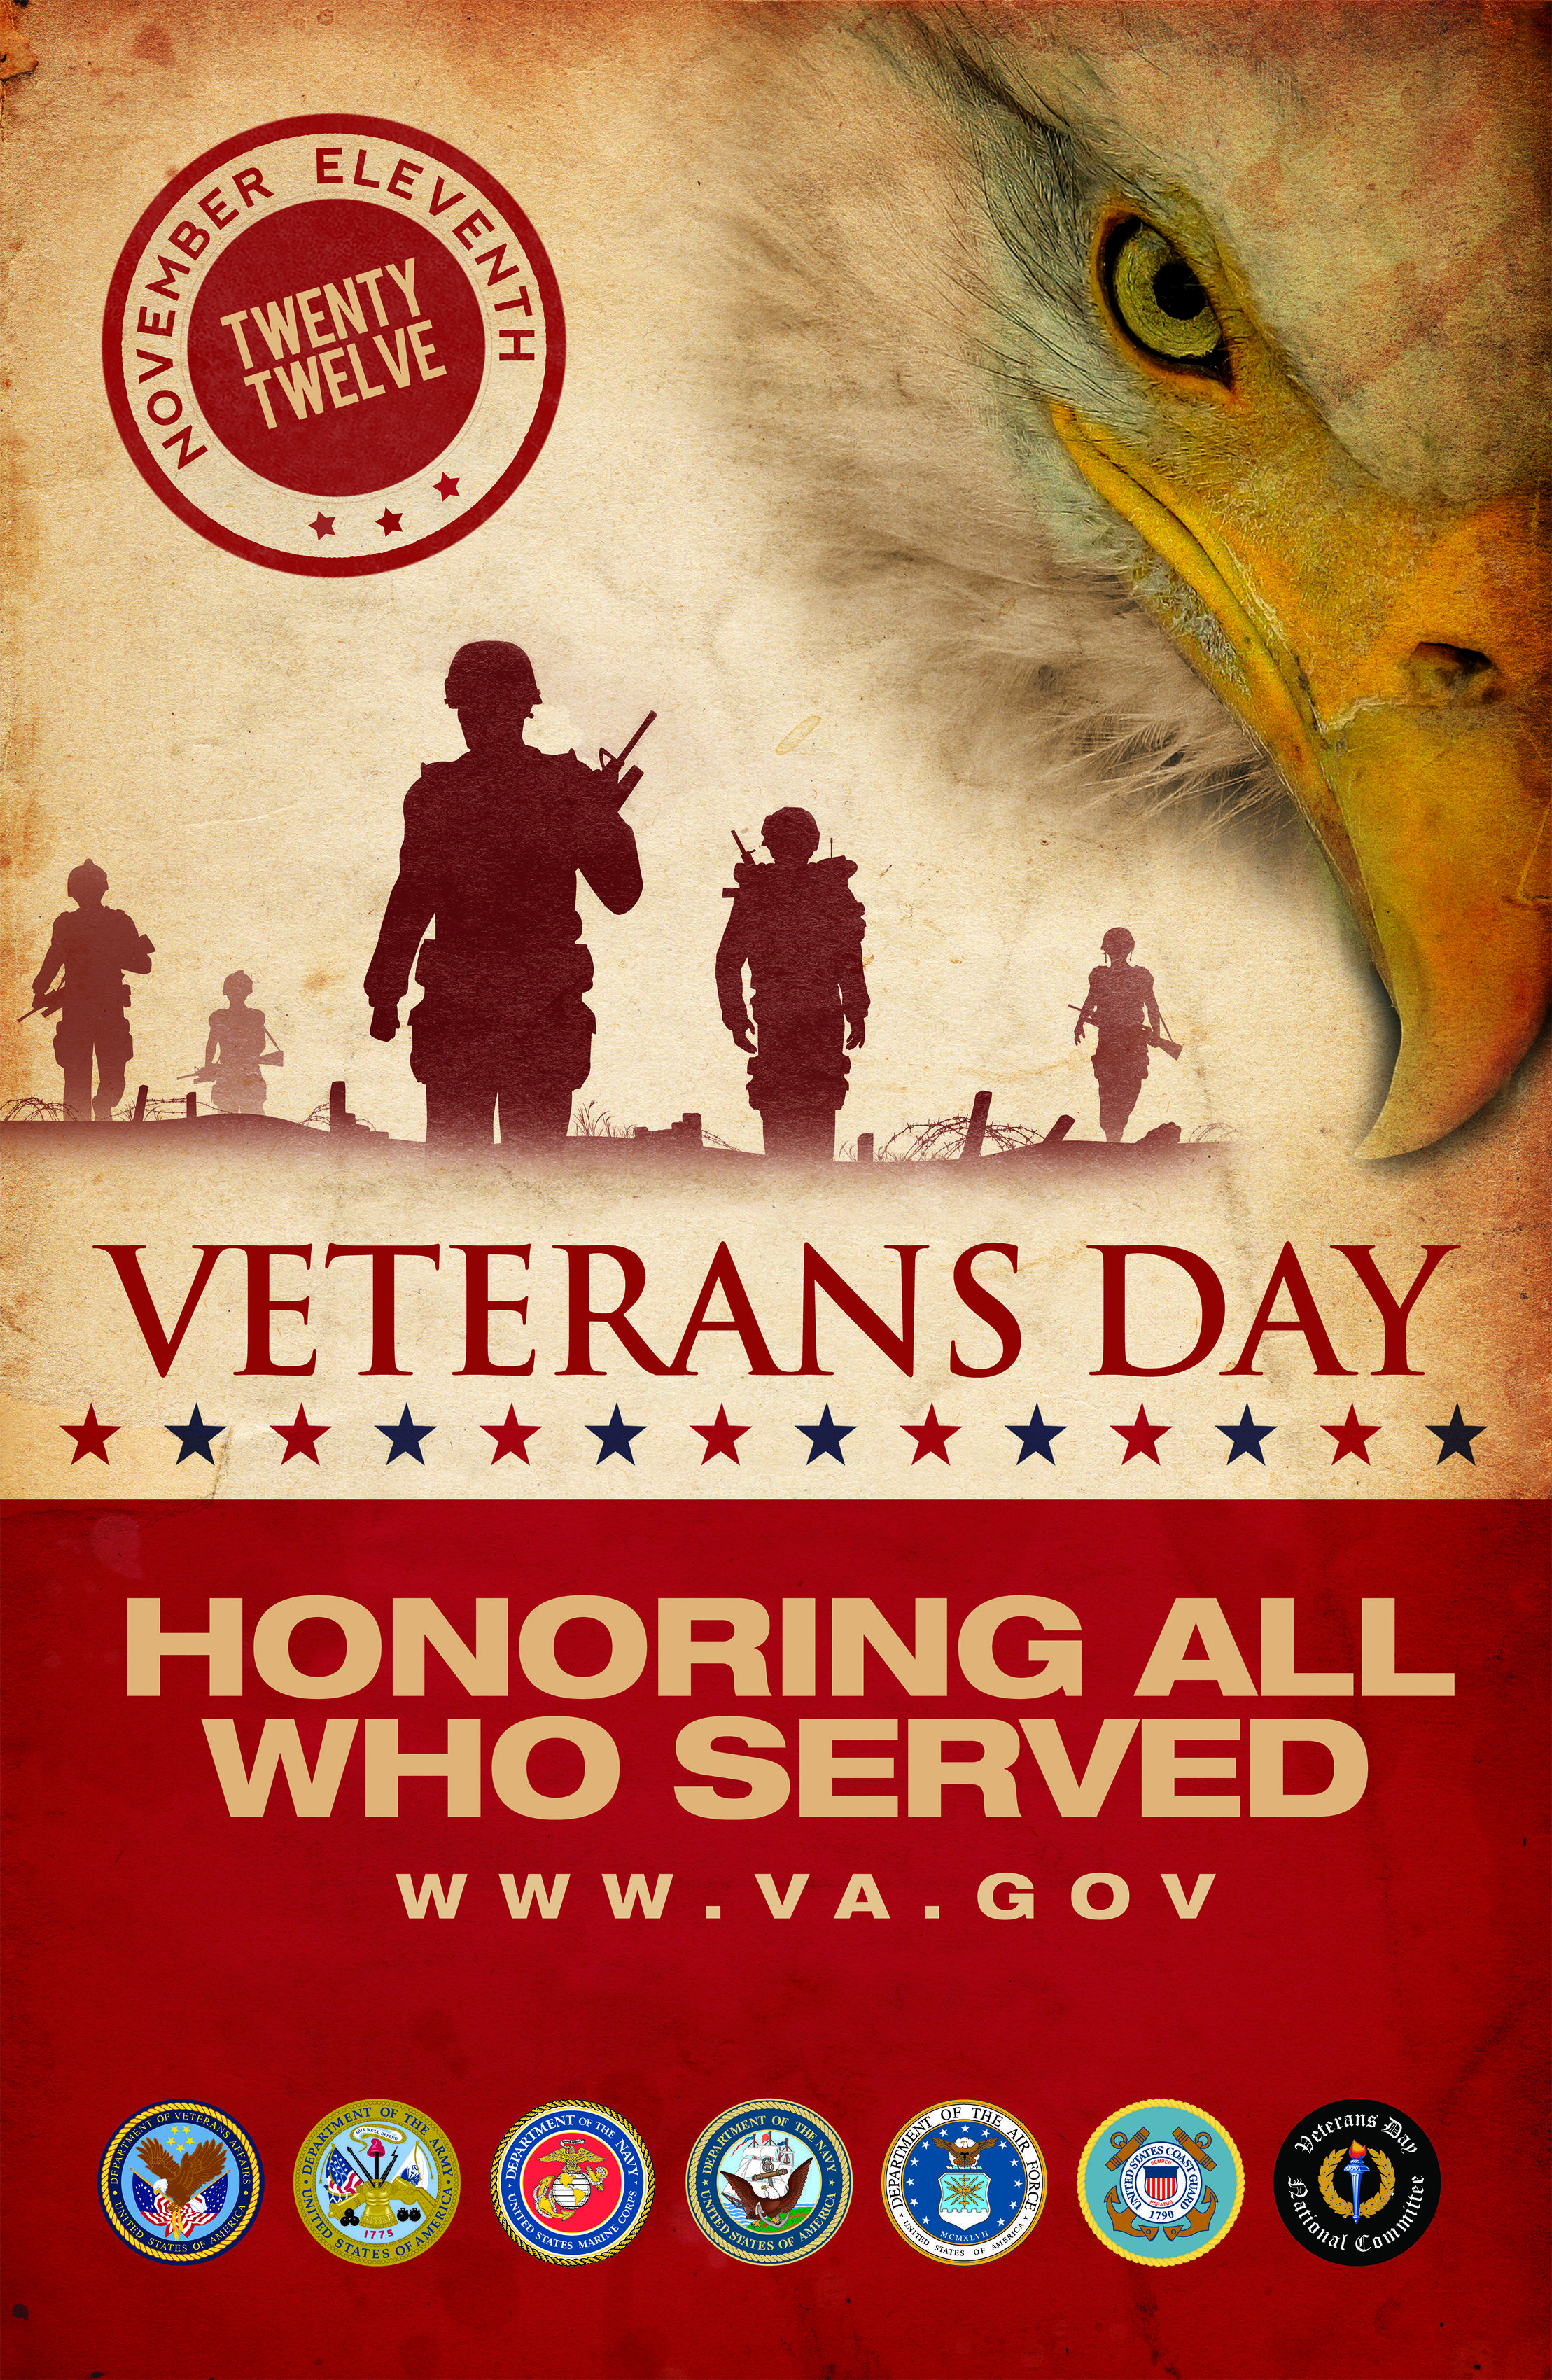 Veterans Day Poster Gallery - Office of Public and Intergovernmental ...